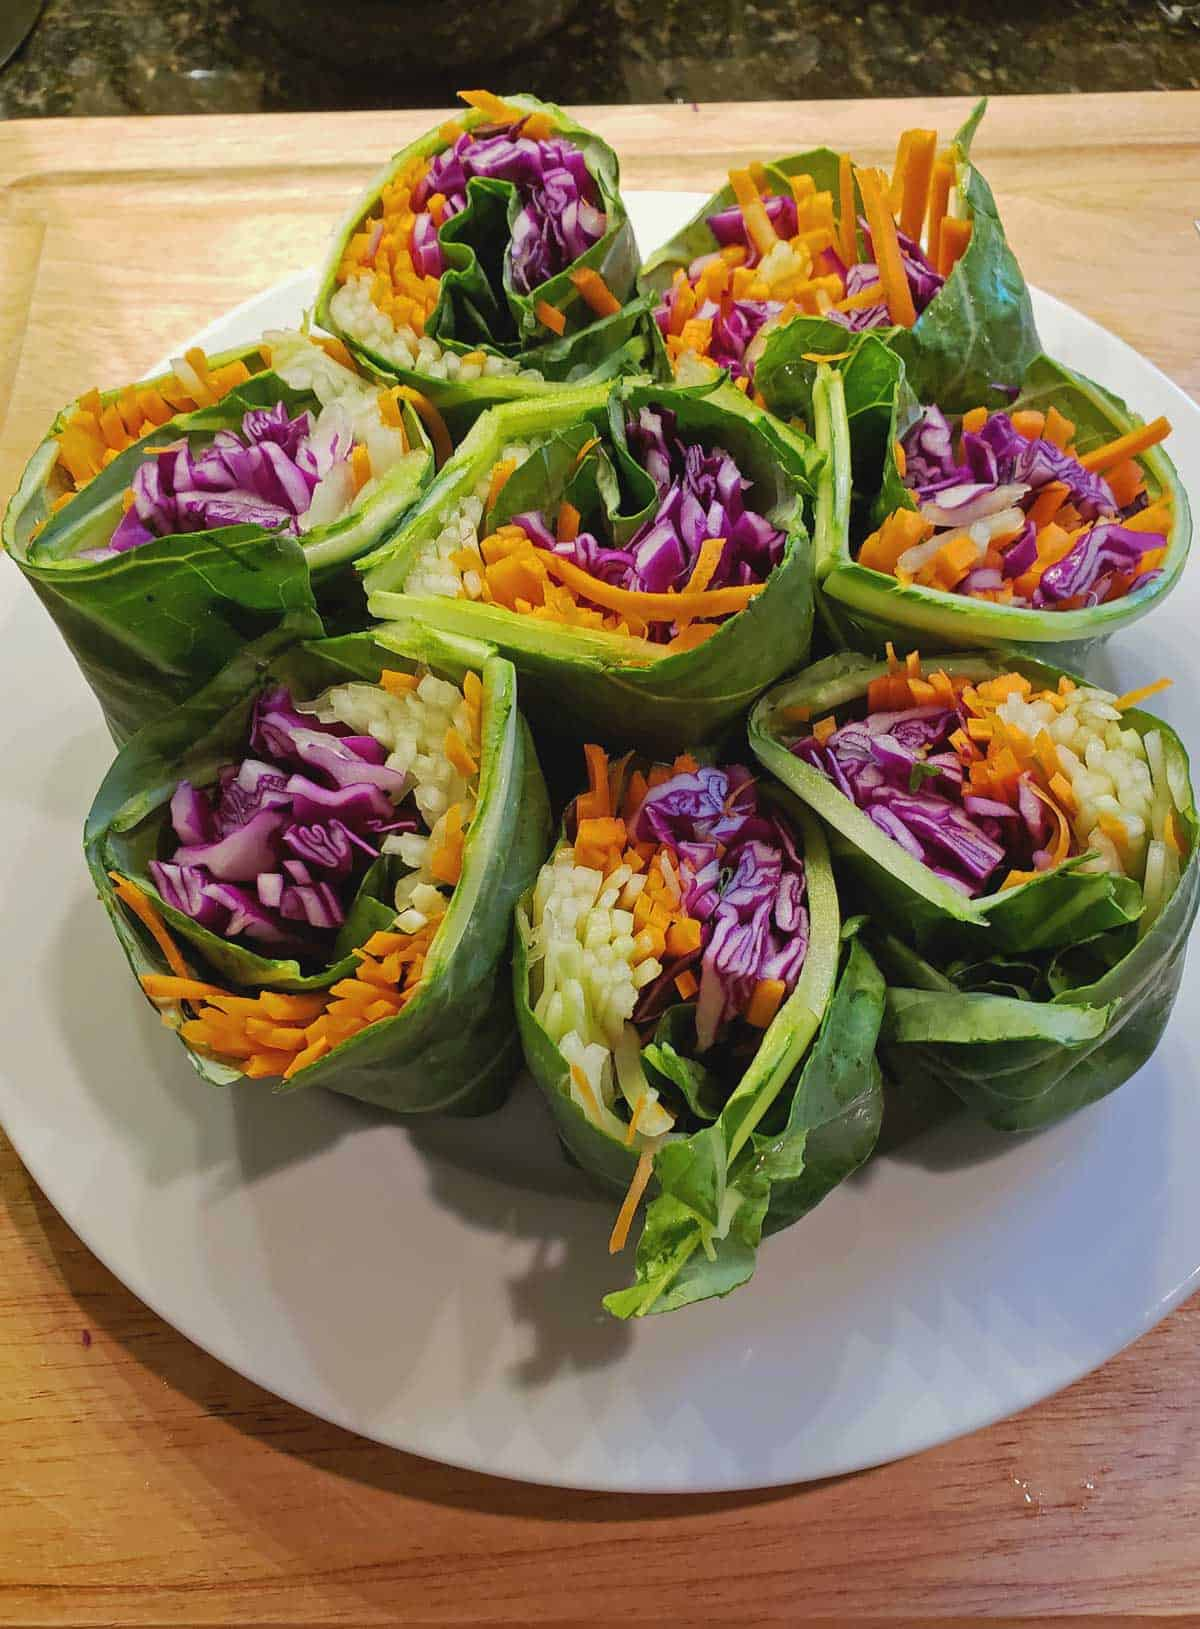 Rainbow Roll-ups, a quick healthy lunch or a surprising party appetizer for all of your family and friends to enjoy. Pass the peanut sauce, please!